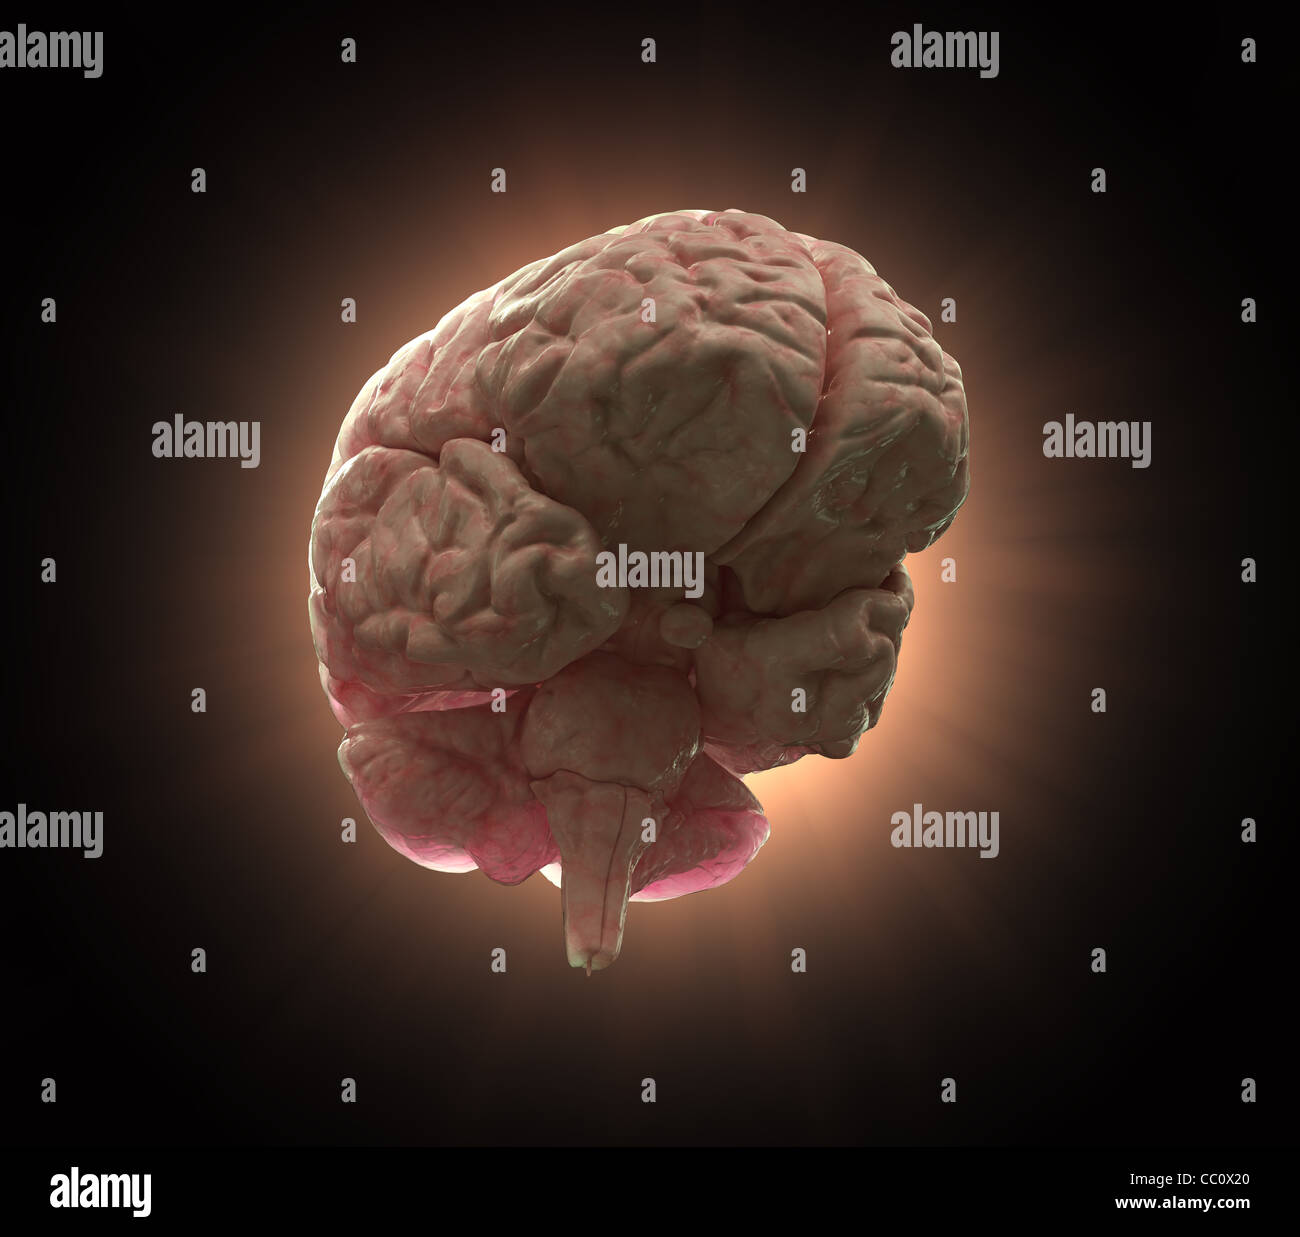 Glowing human brain on a black background - intelligence and creativity concept illustration - Stock Image